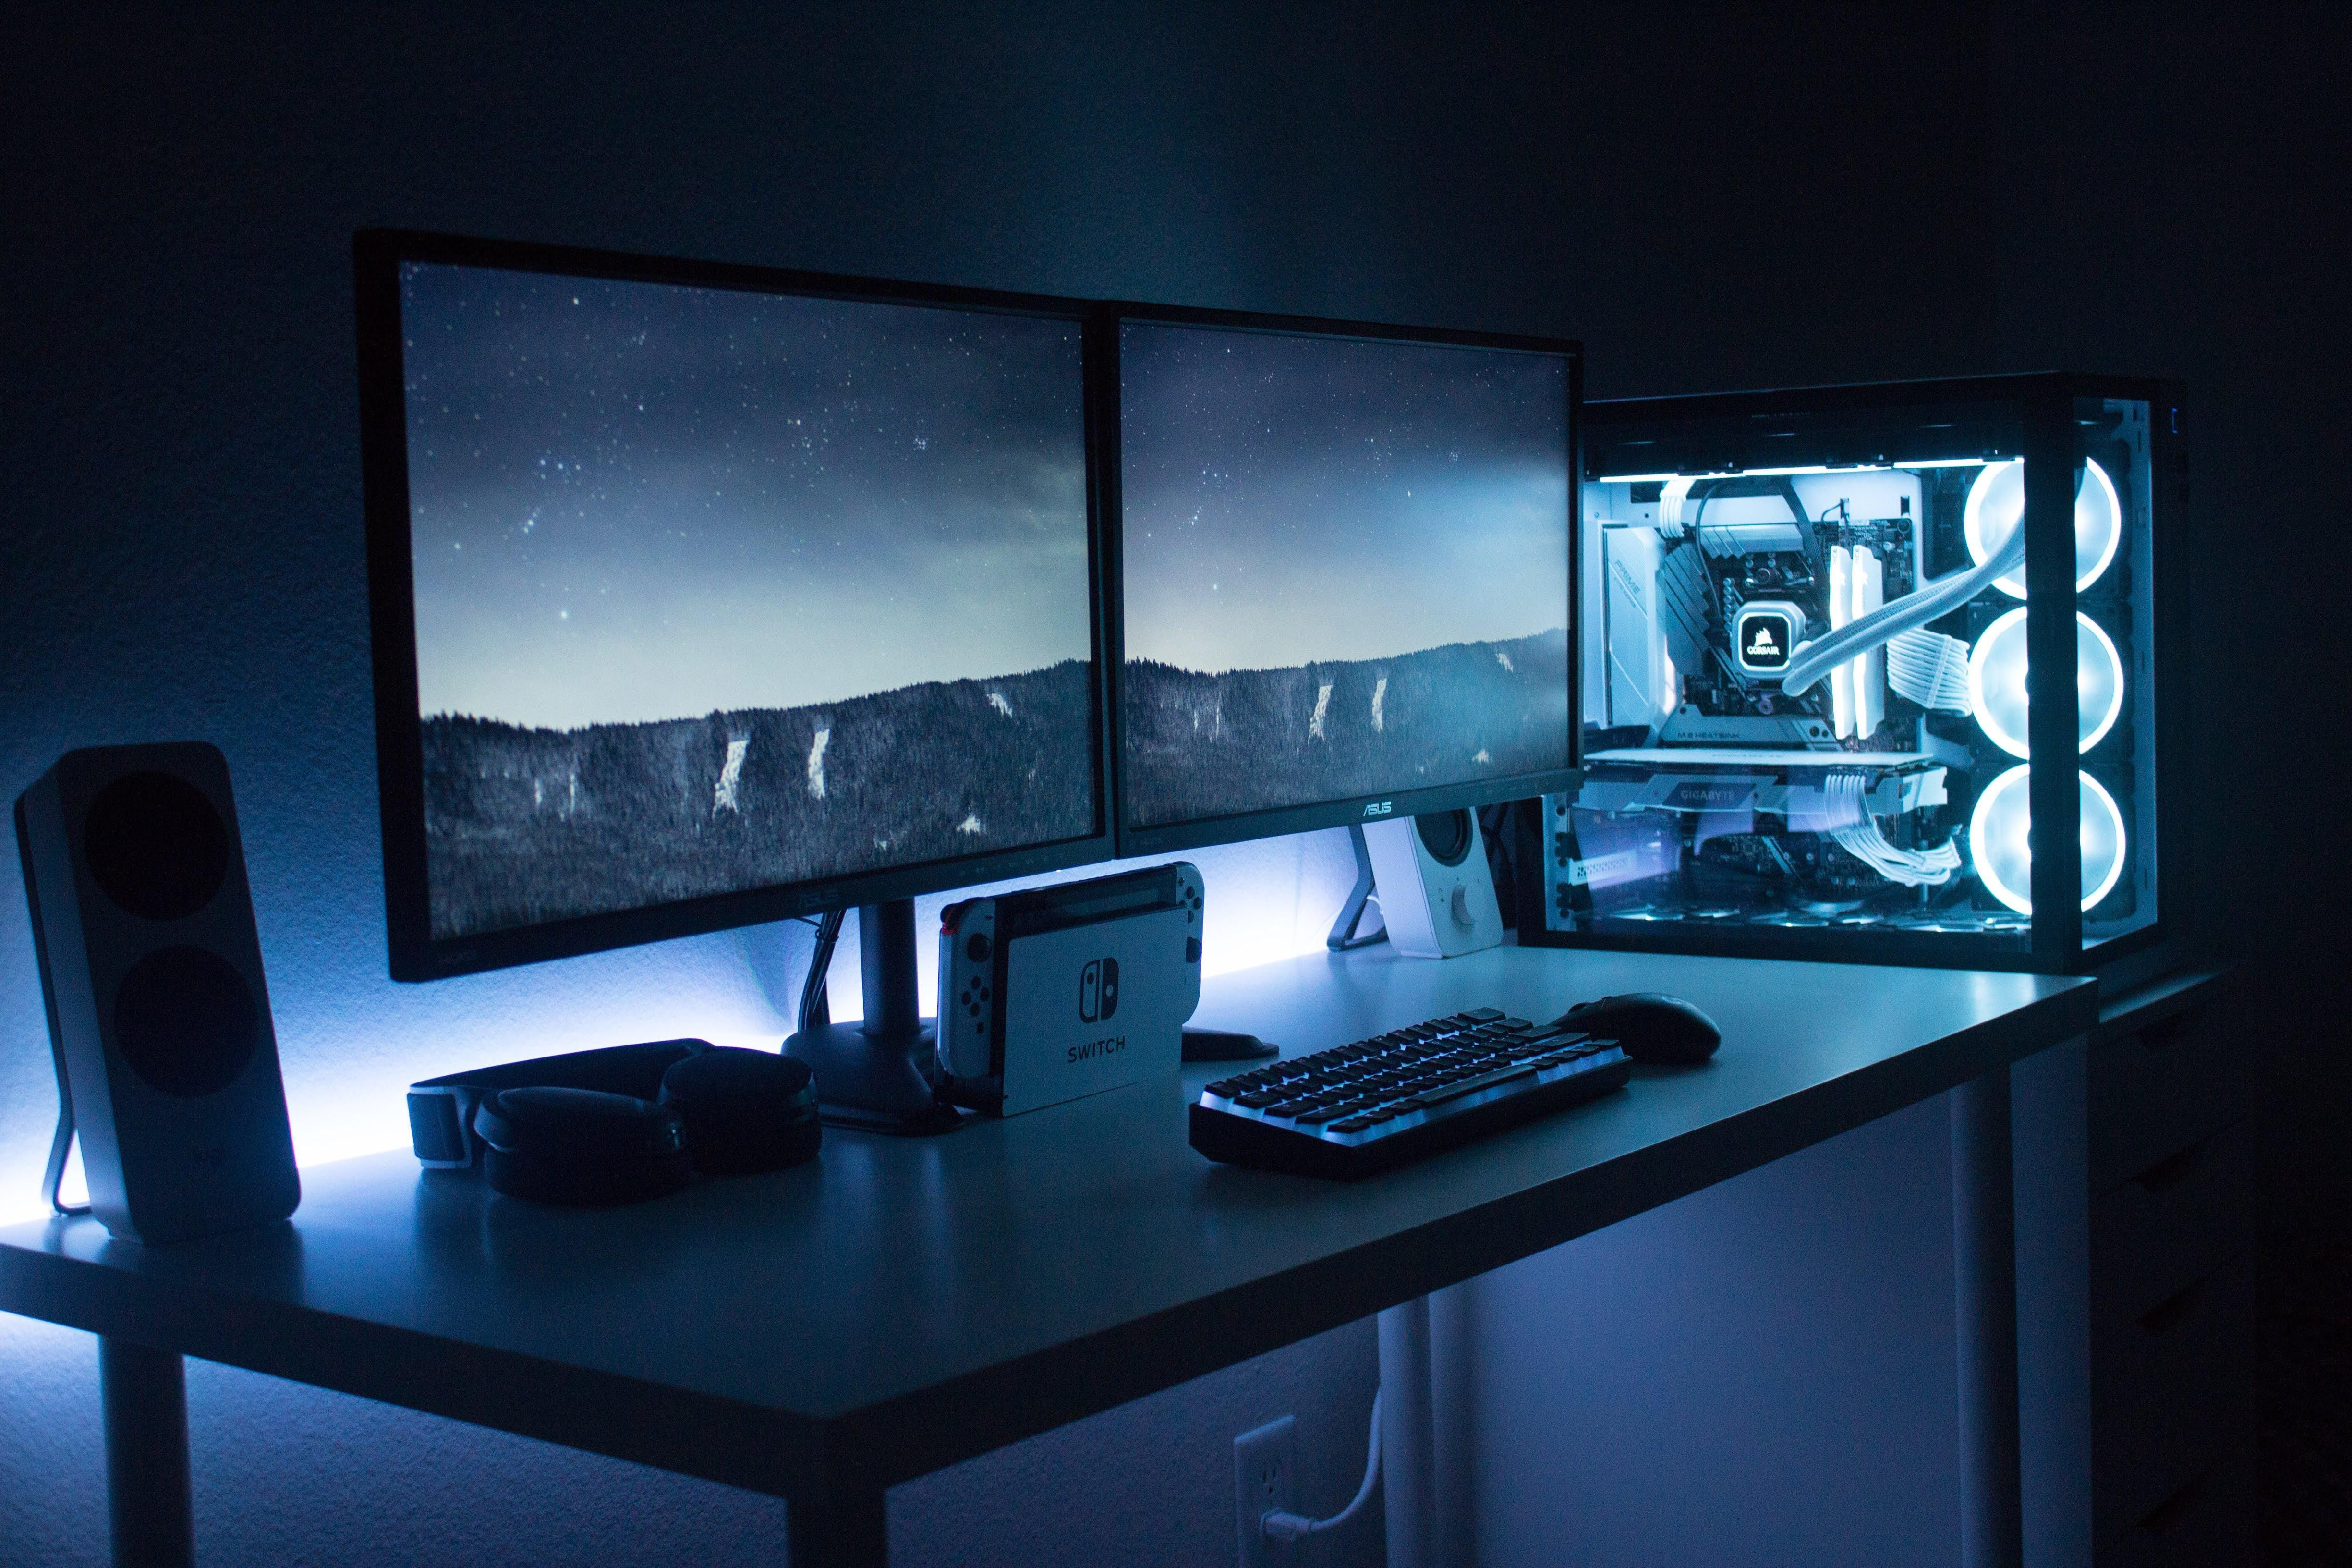 Finally finished my first battlestation! (With images